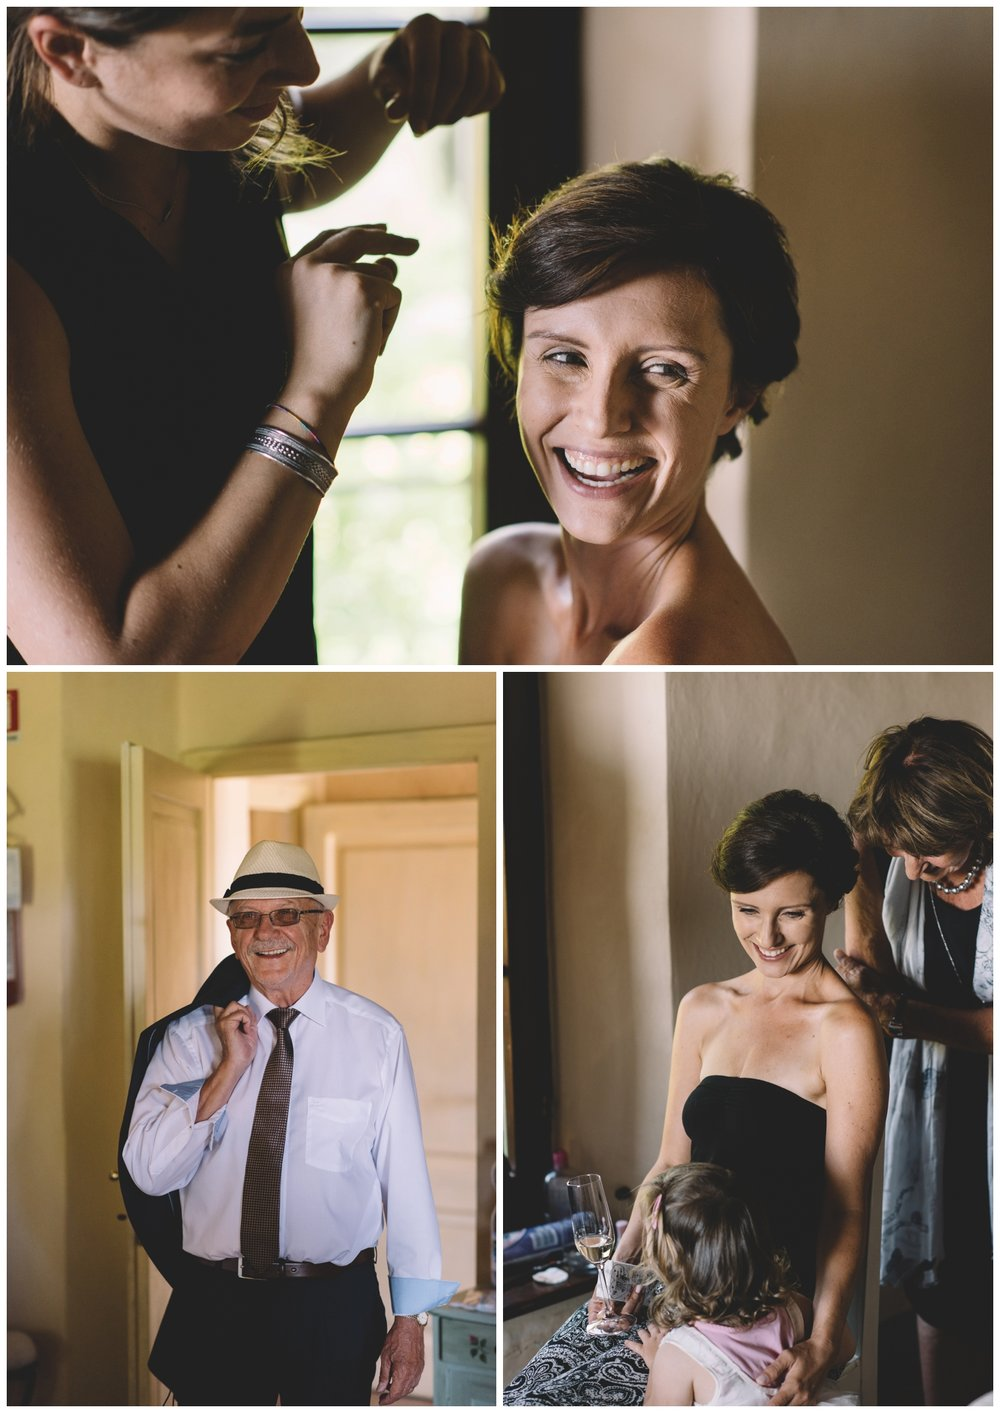 Wedding_Photographer_Tuscany_Italy_0004.jpg